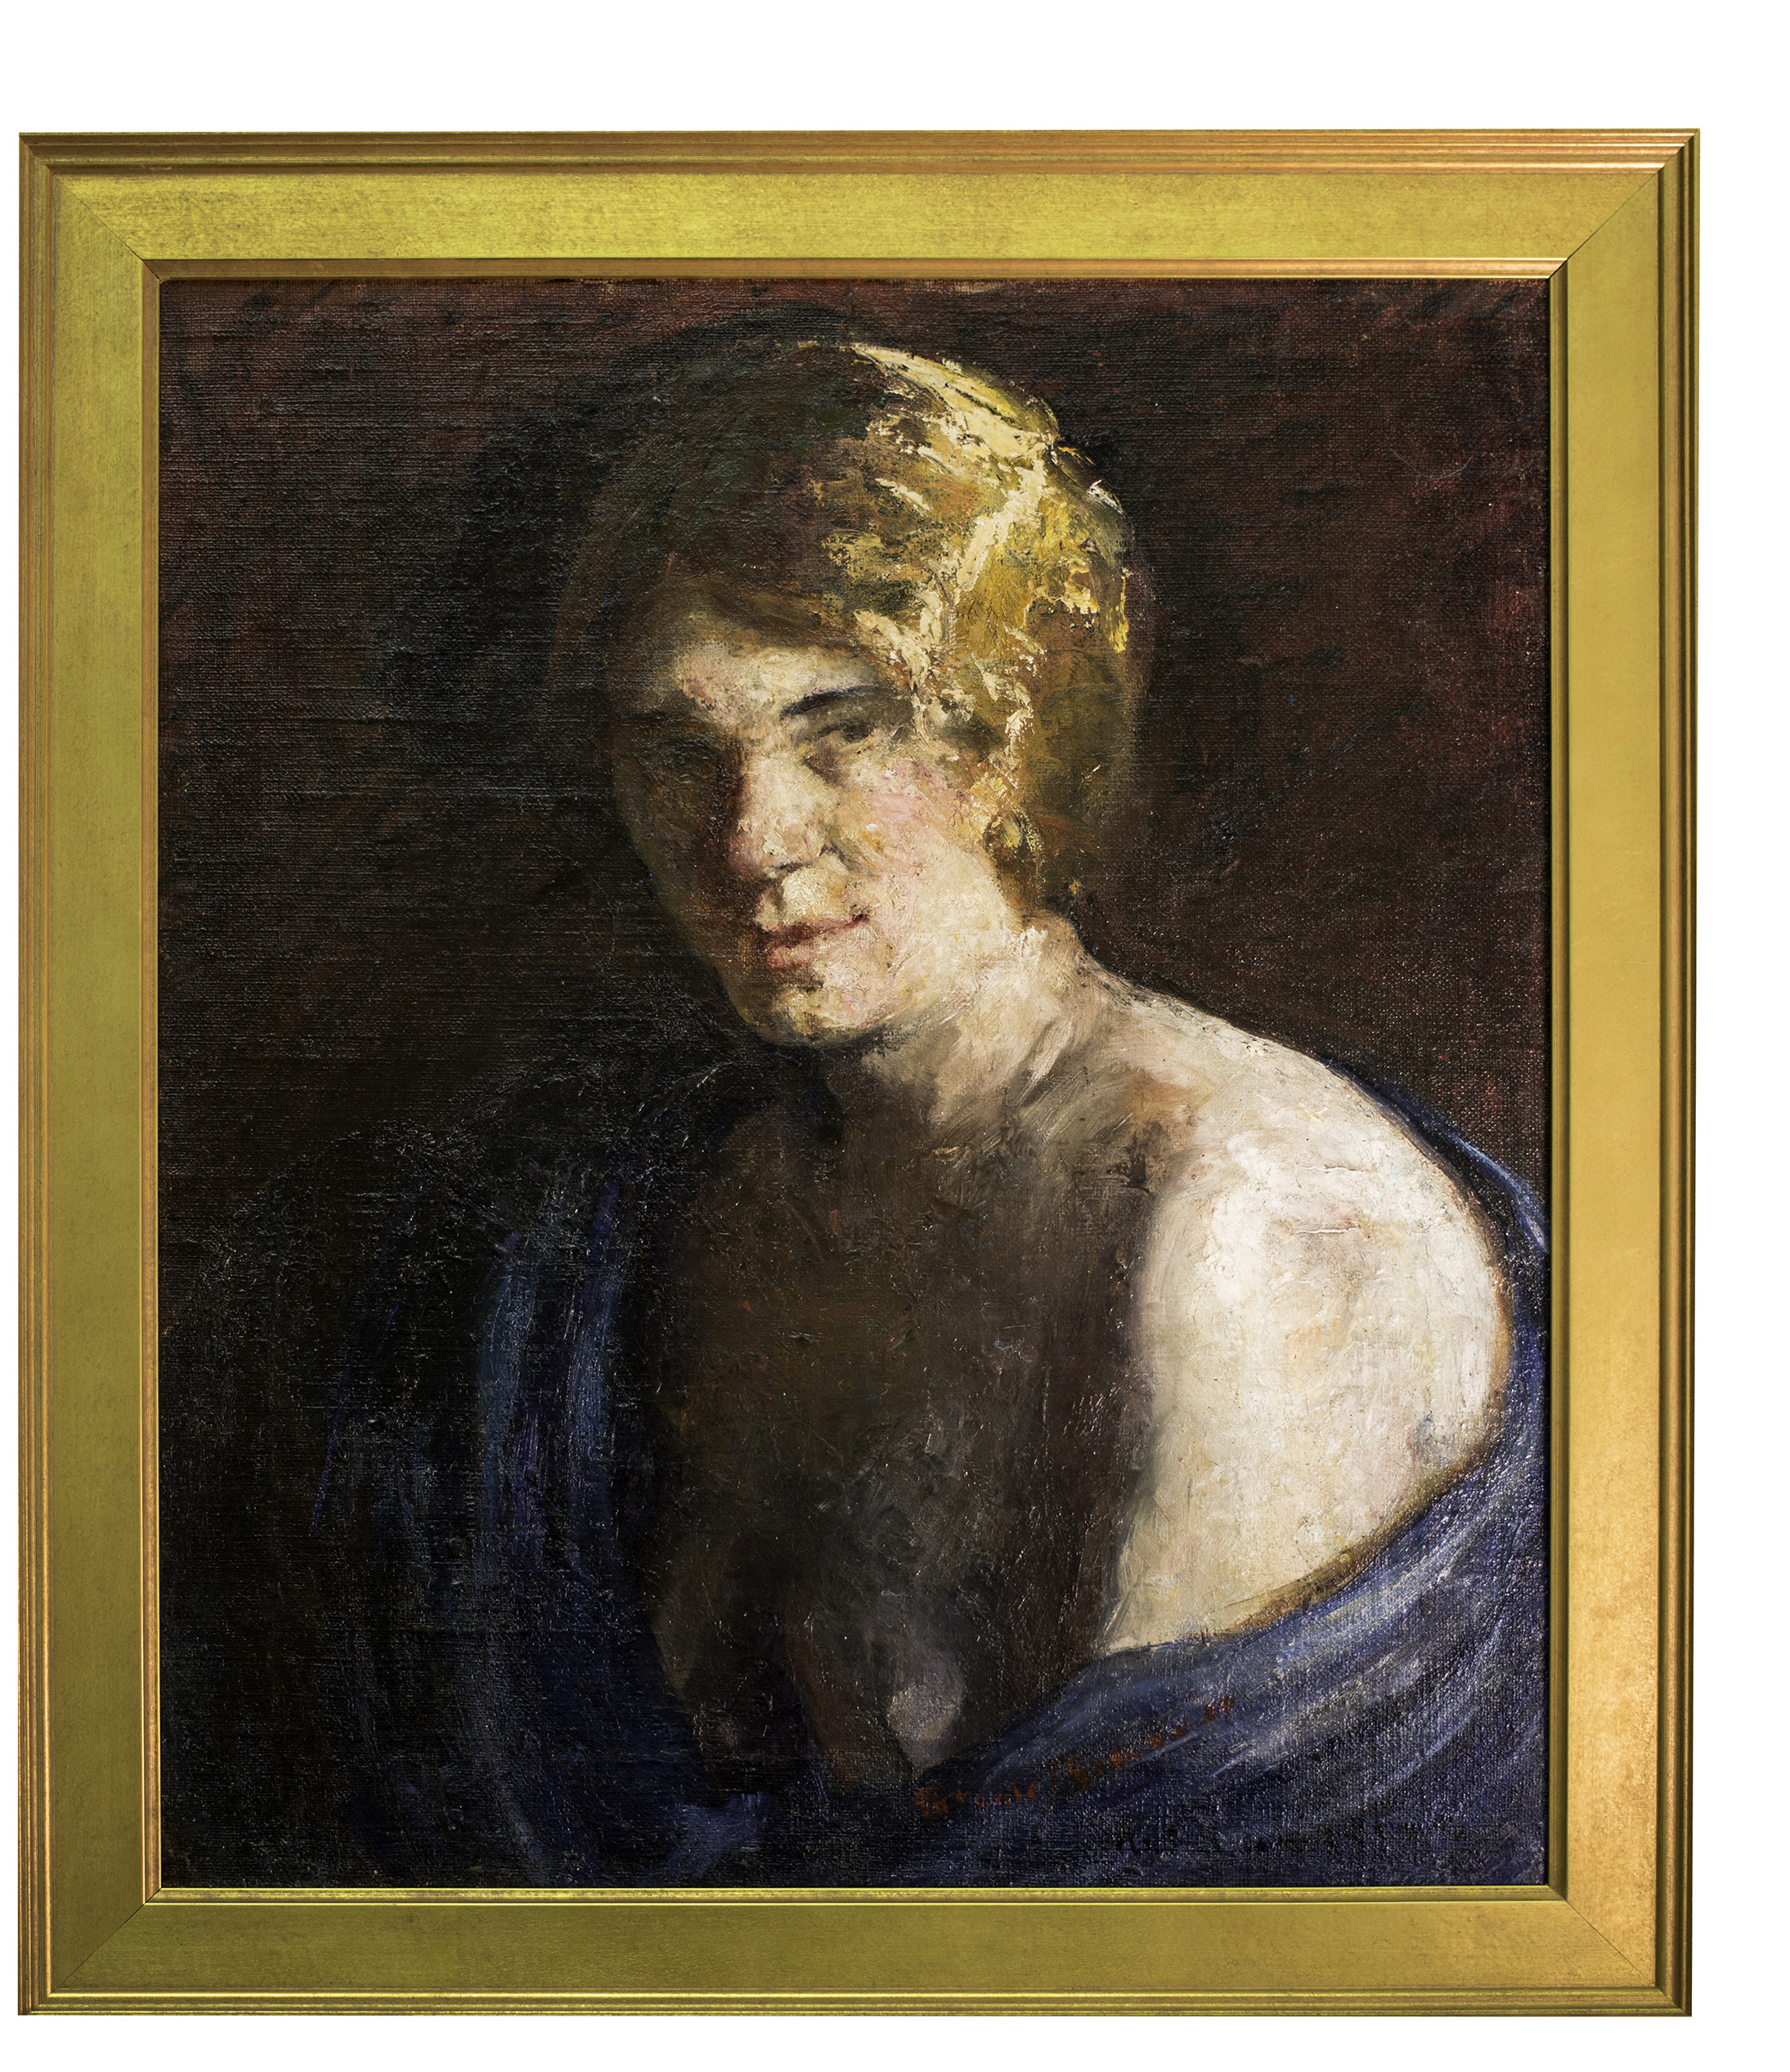 Antonia Greene self-portrait, 1929. She signed this painting twice. Once as artist, proof of authorship. Again, in red on the blue shawl wrap, as a title: THIS IS ME.